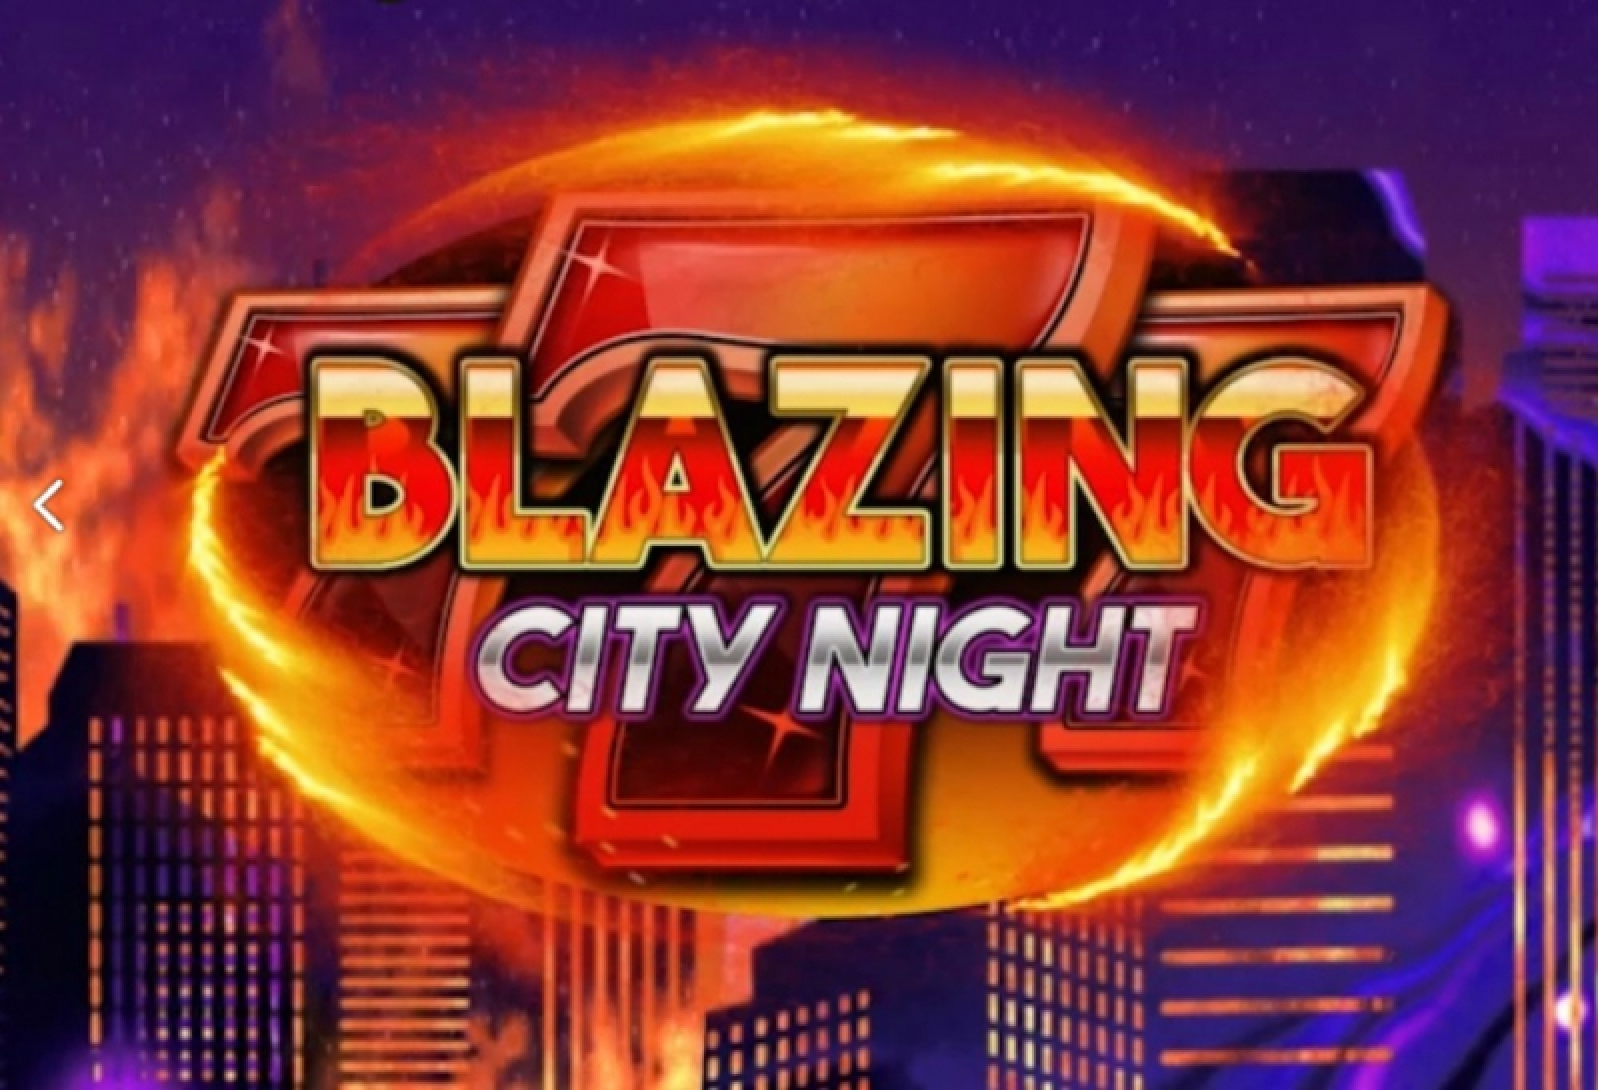 Se Blazing City Night Online Slot Demo Game, We Are Casino